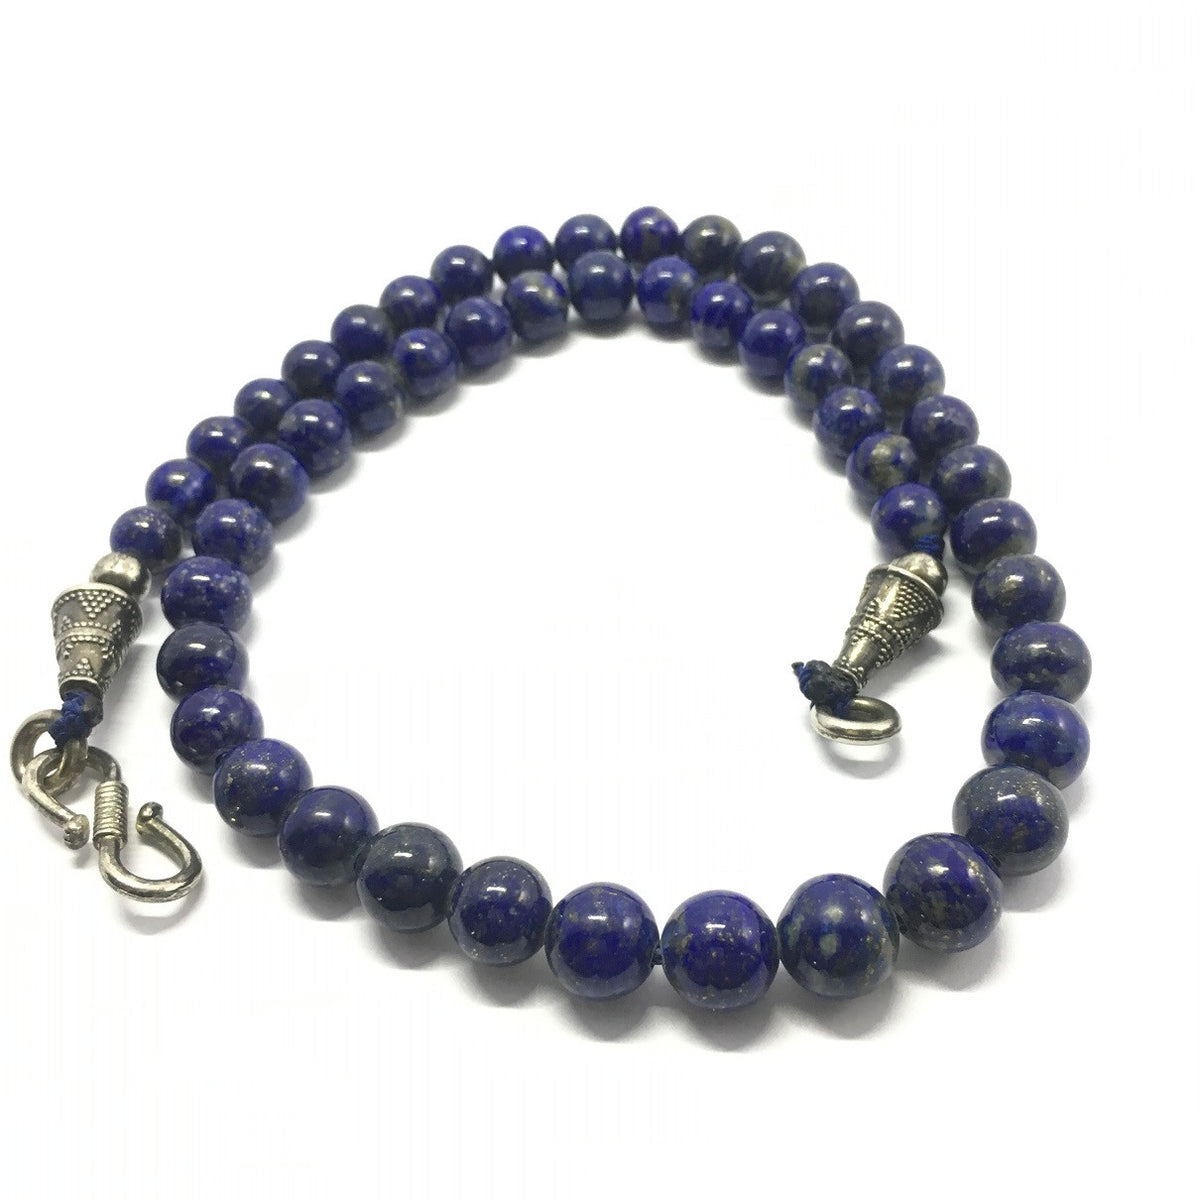 257.5 Carat, 49 Round Beads Lapis Lazuli Necklace With Metal Lock